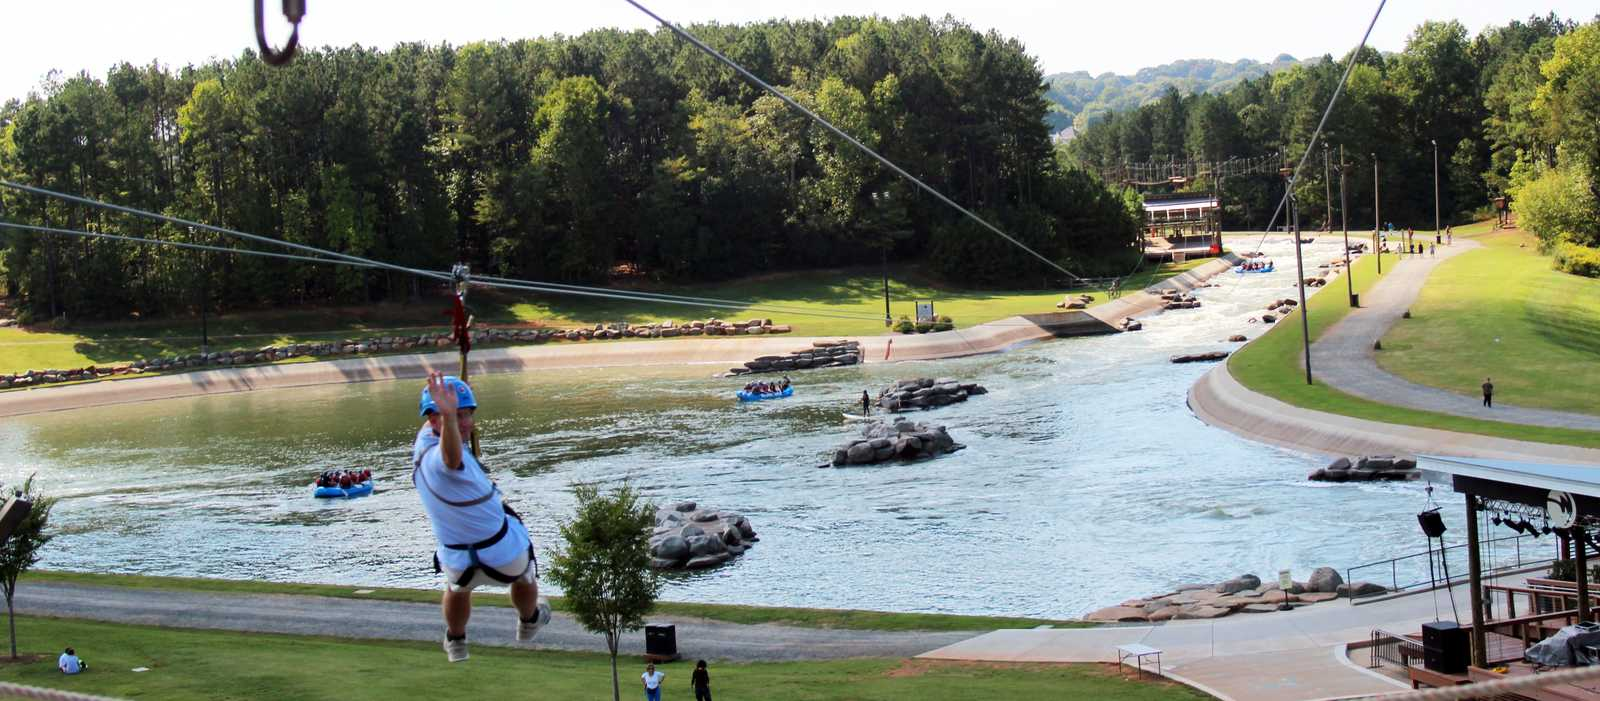 National Whitewater Center in Charlotte